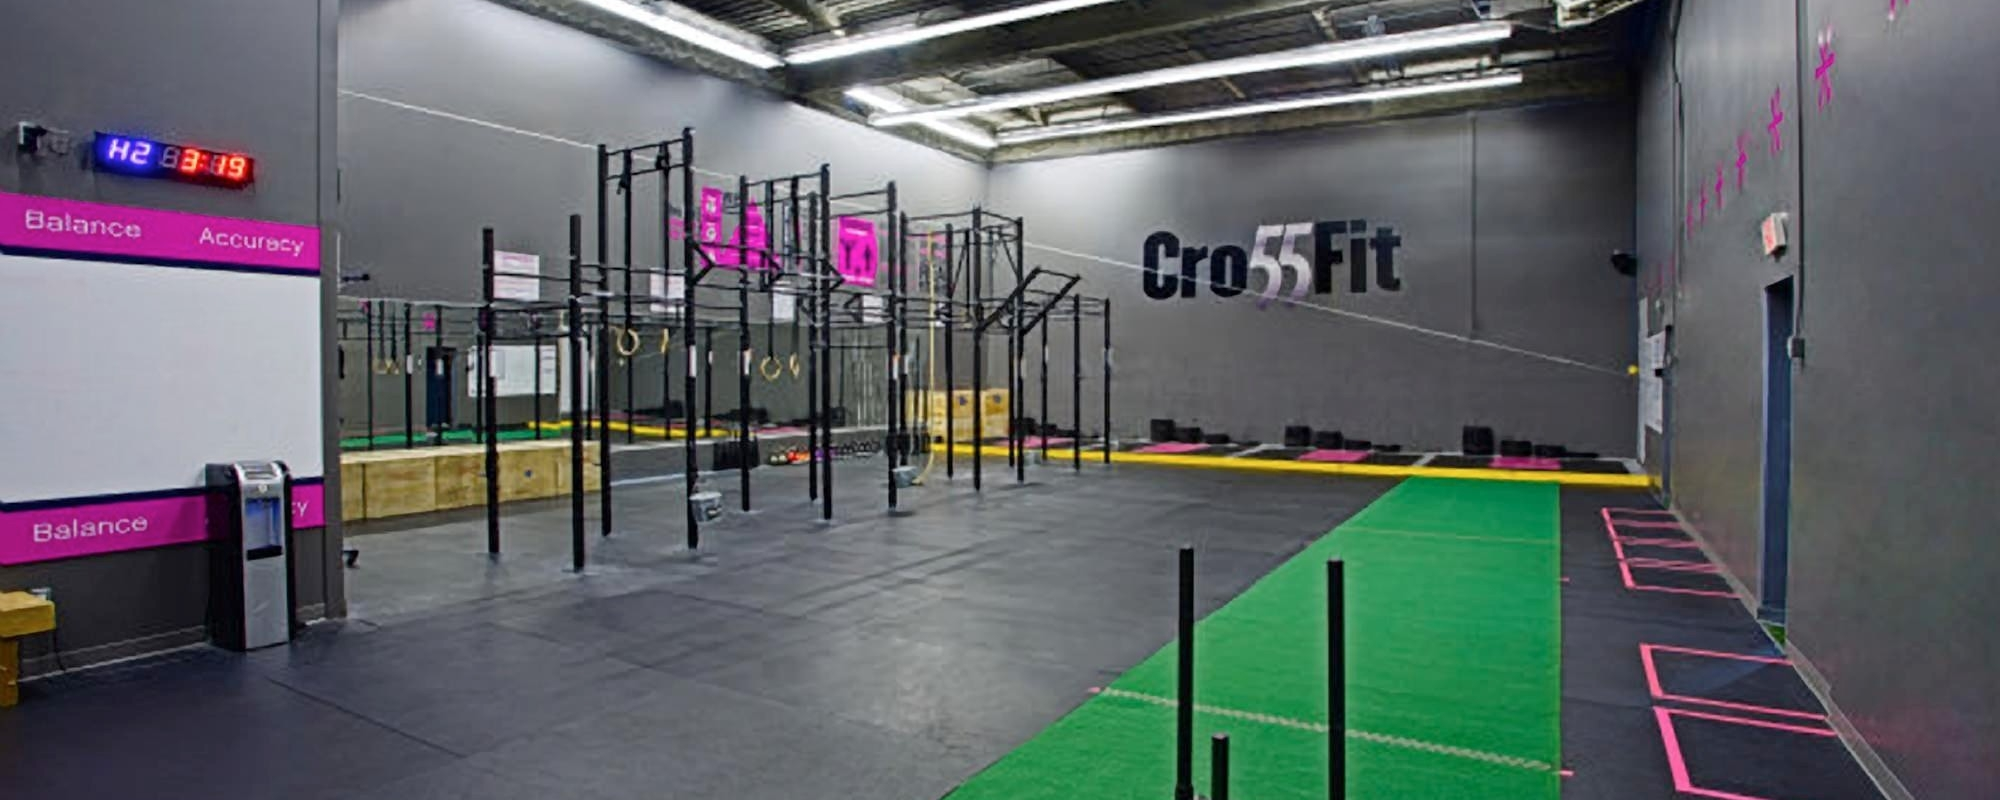 Studeo55-CrossFit-HomePage-Photo7